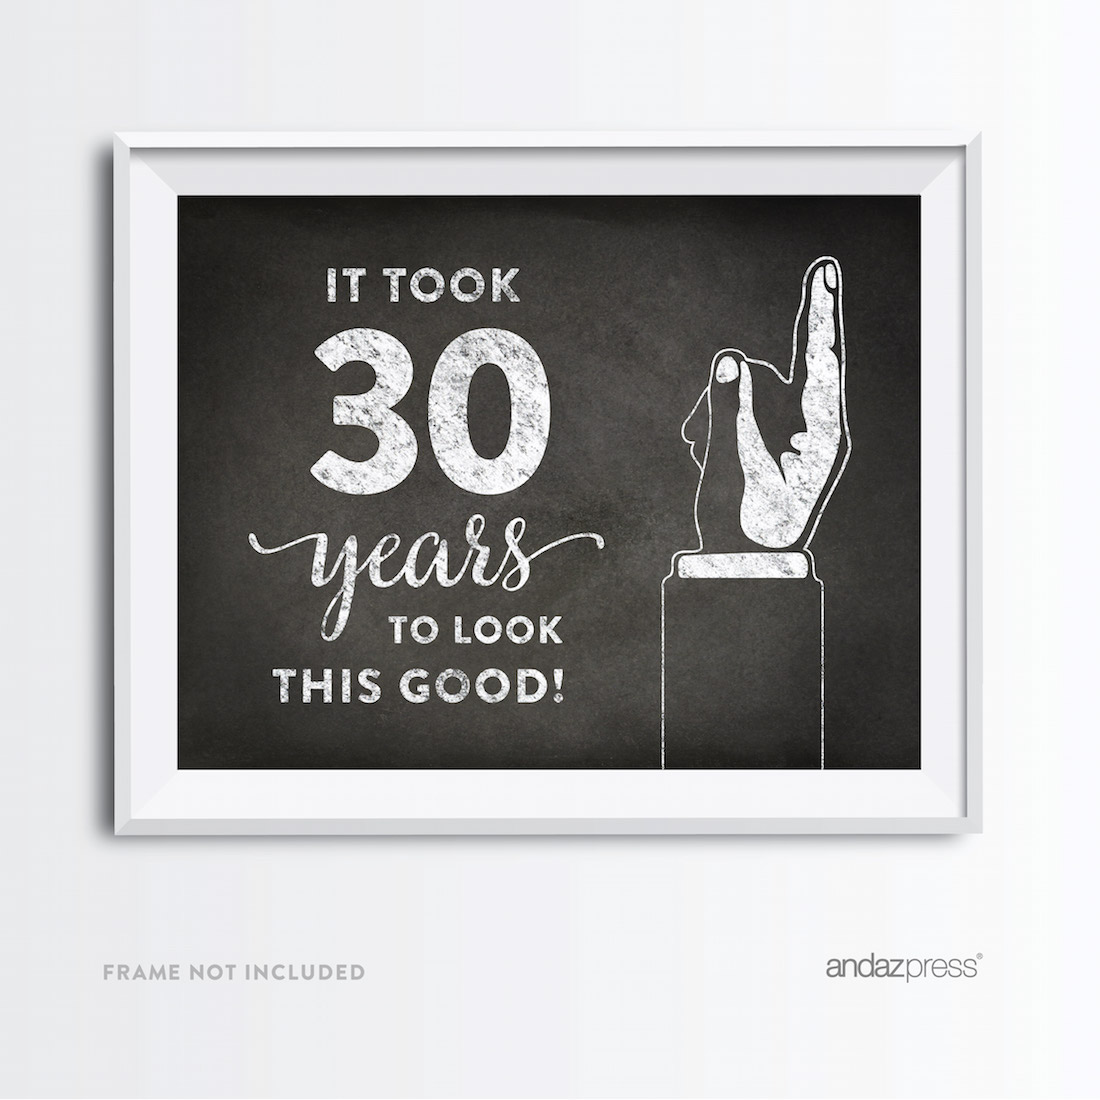 Andaz Press Milestone Birthday Wall Art Poster Signs 40th Gifts Decorations And Party Decor It Took 40 Years To Look This Good Print 1 Pack